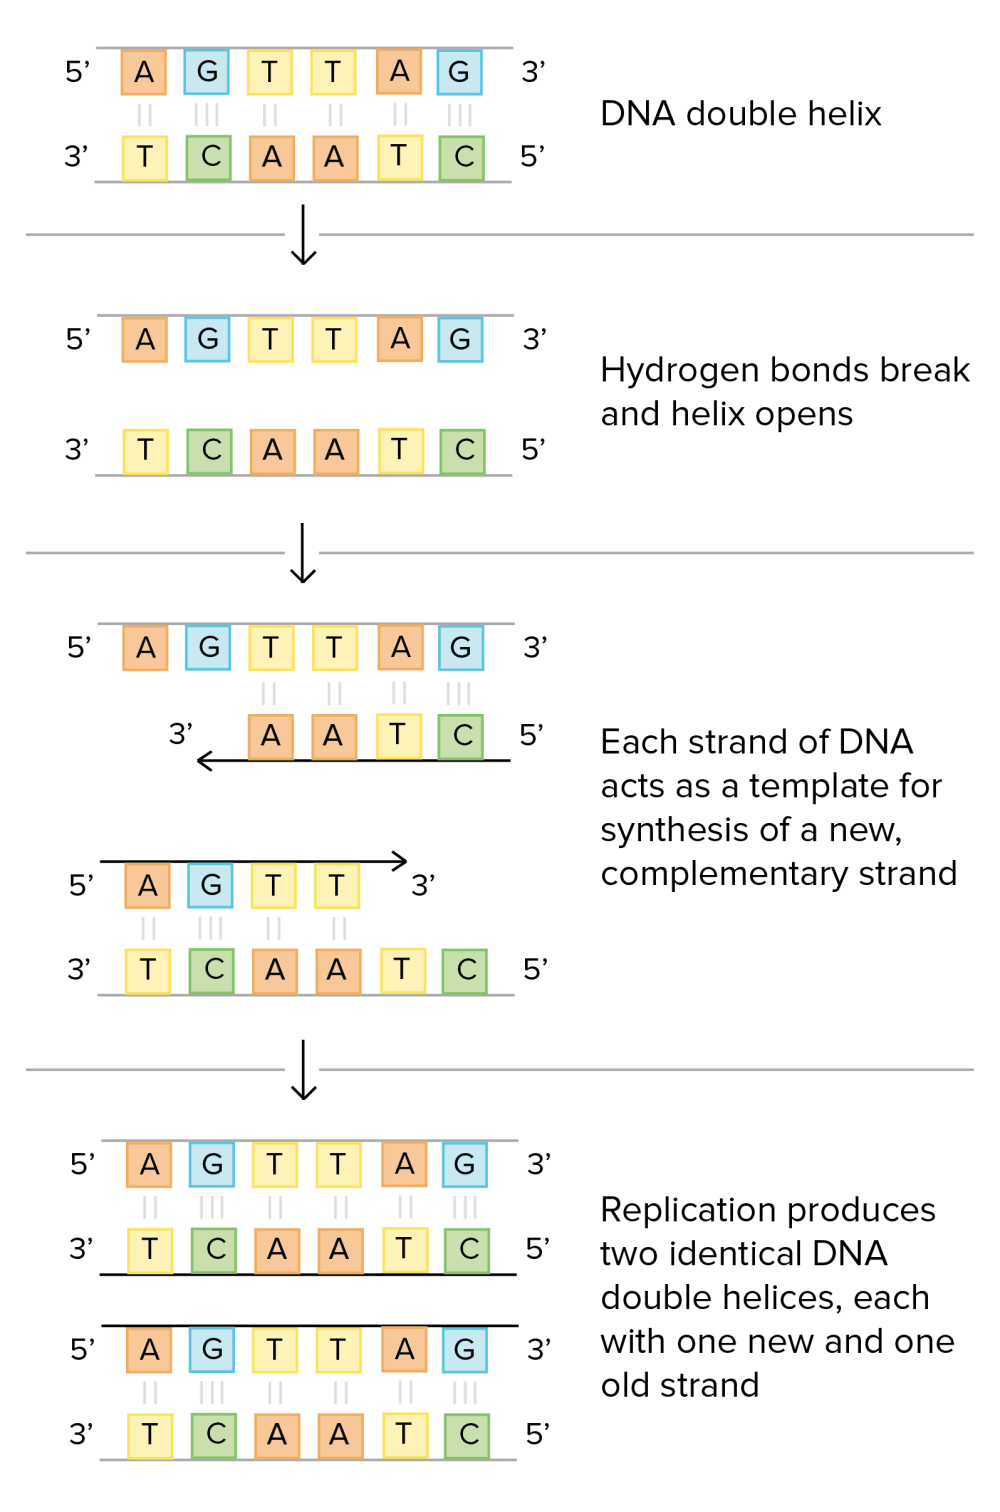 medium resolution of schematic of watson and crick s basic model of dna replication 1 dna double helix